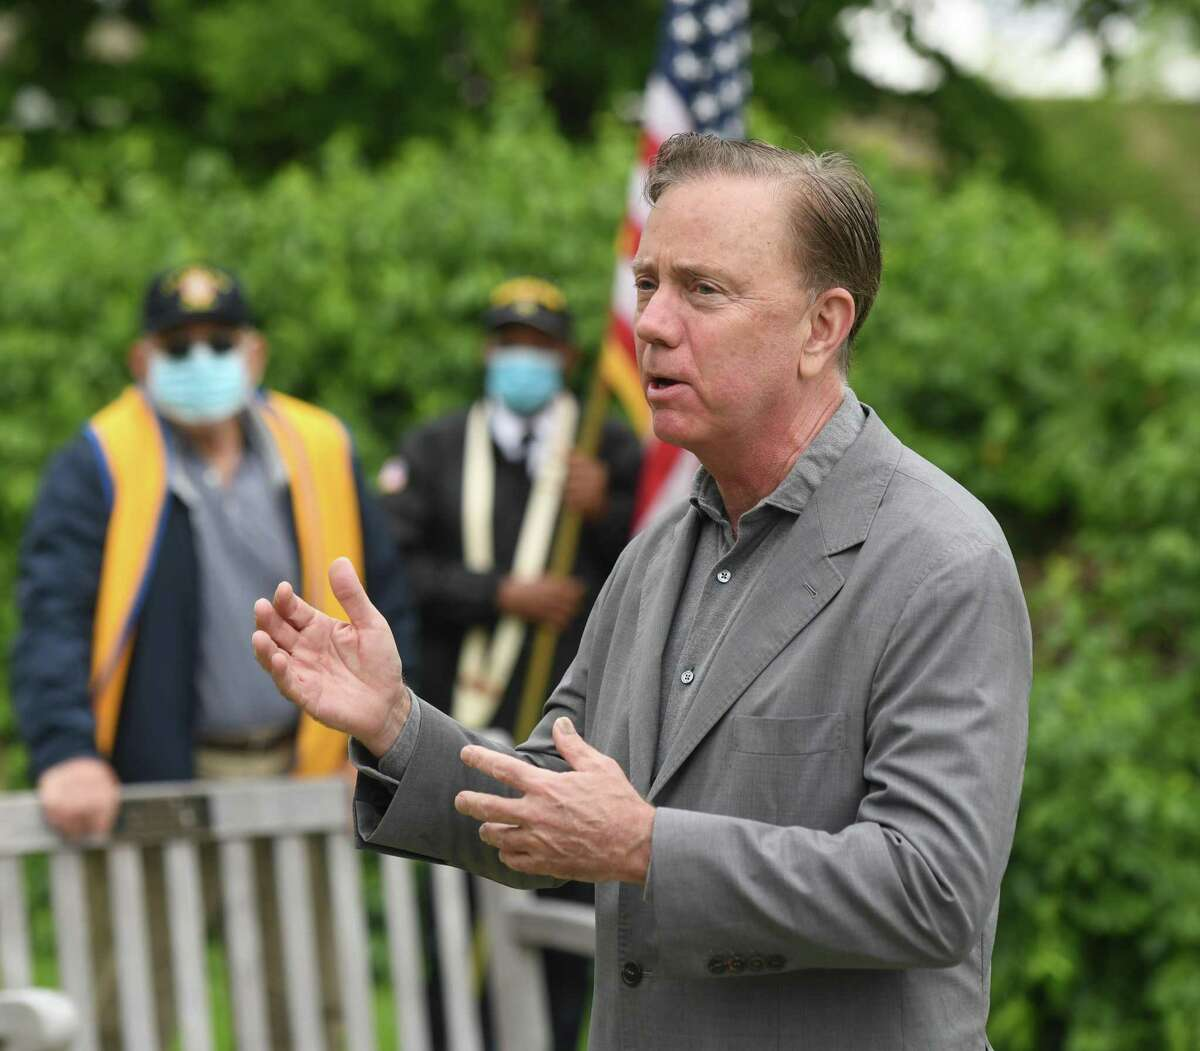 The use of emergency powers by Gov. Ned Lamont, a Greenwich resident, has become increasingly debated. COVID cases are on the rise again and his emergency powers will expire in September. What would the 36th District State Senate candidates do?